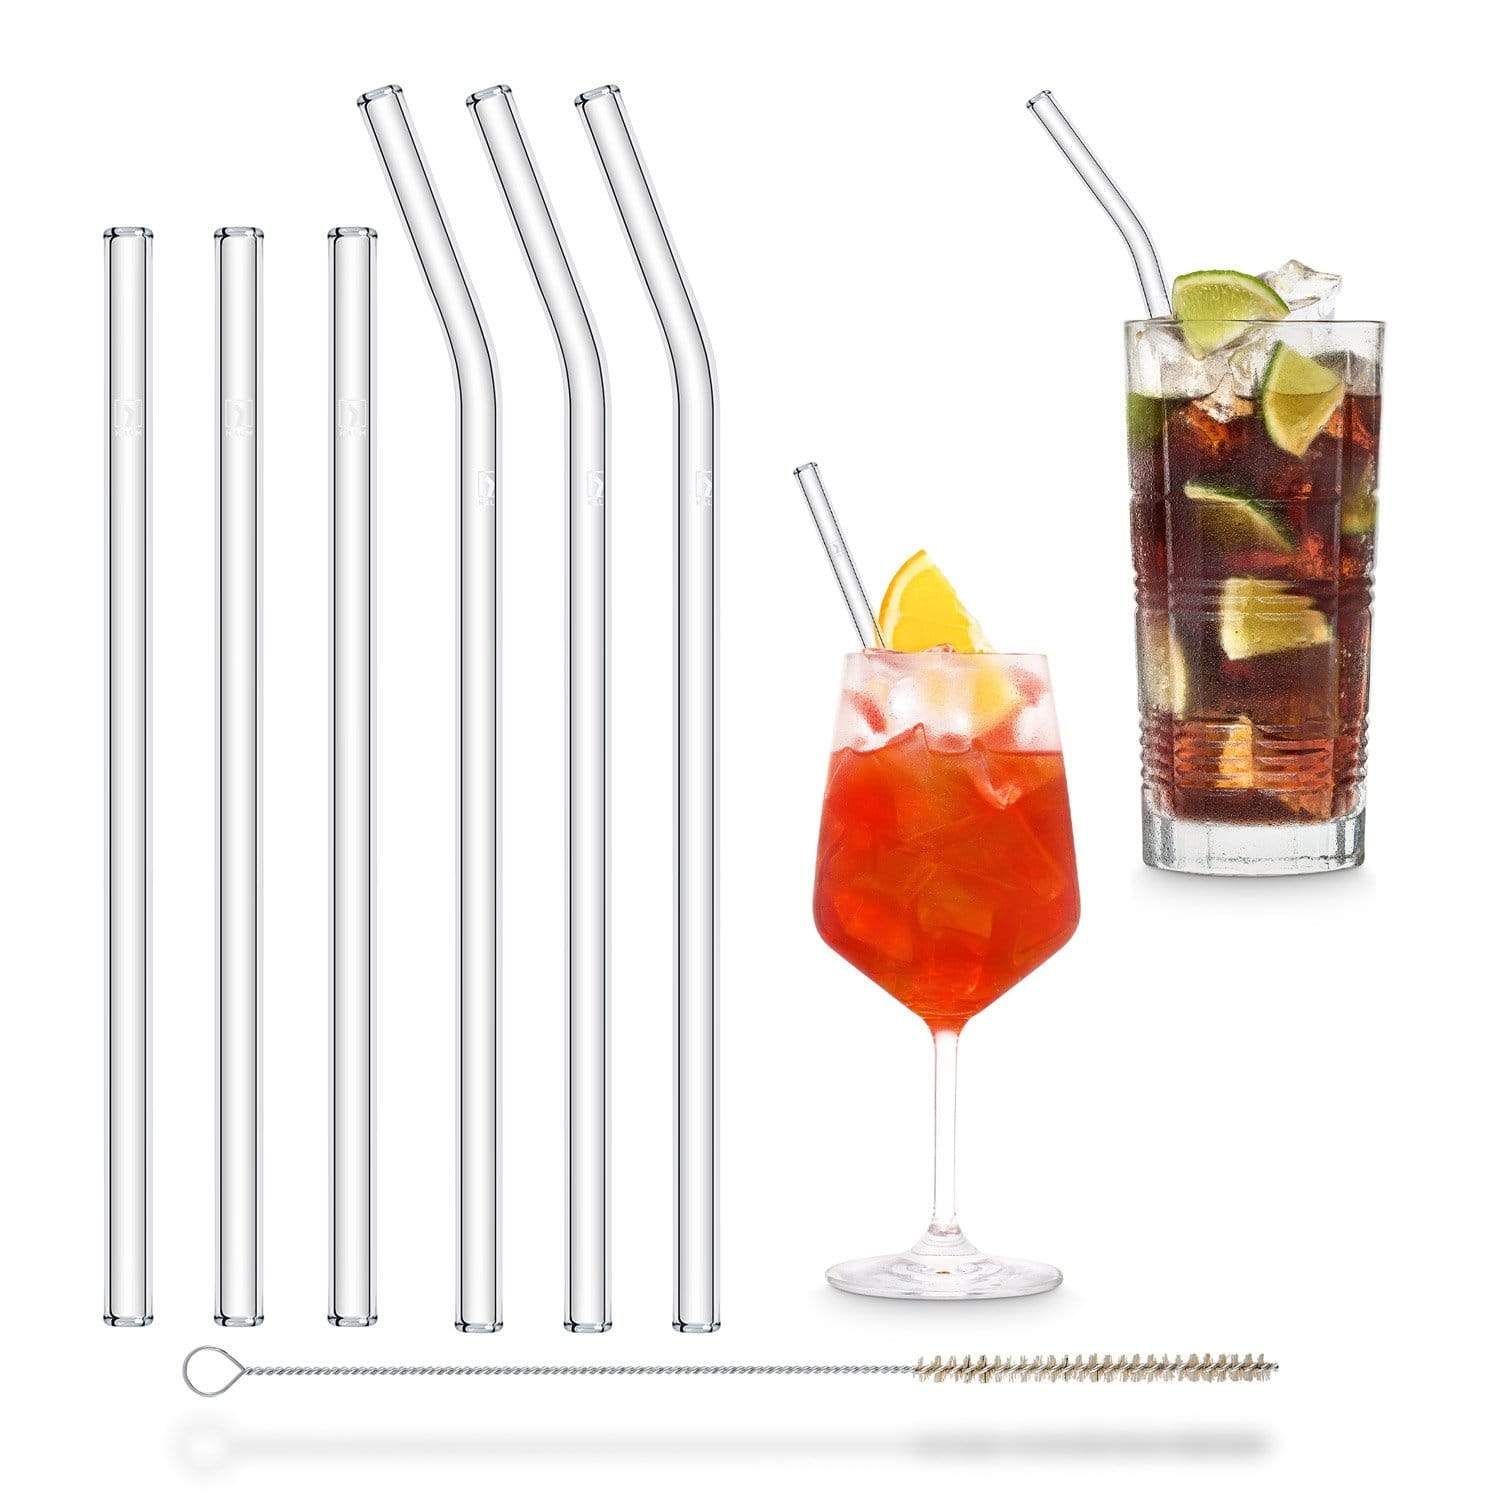 Reusable straws environmentally friendly mixed set bundle glass straws 3 x 23cm Bent 3 x 20cm with cleaning brush